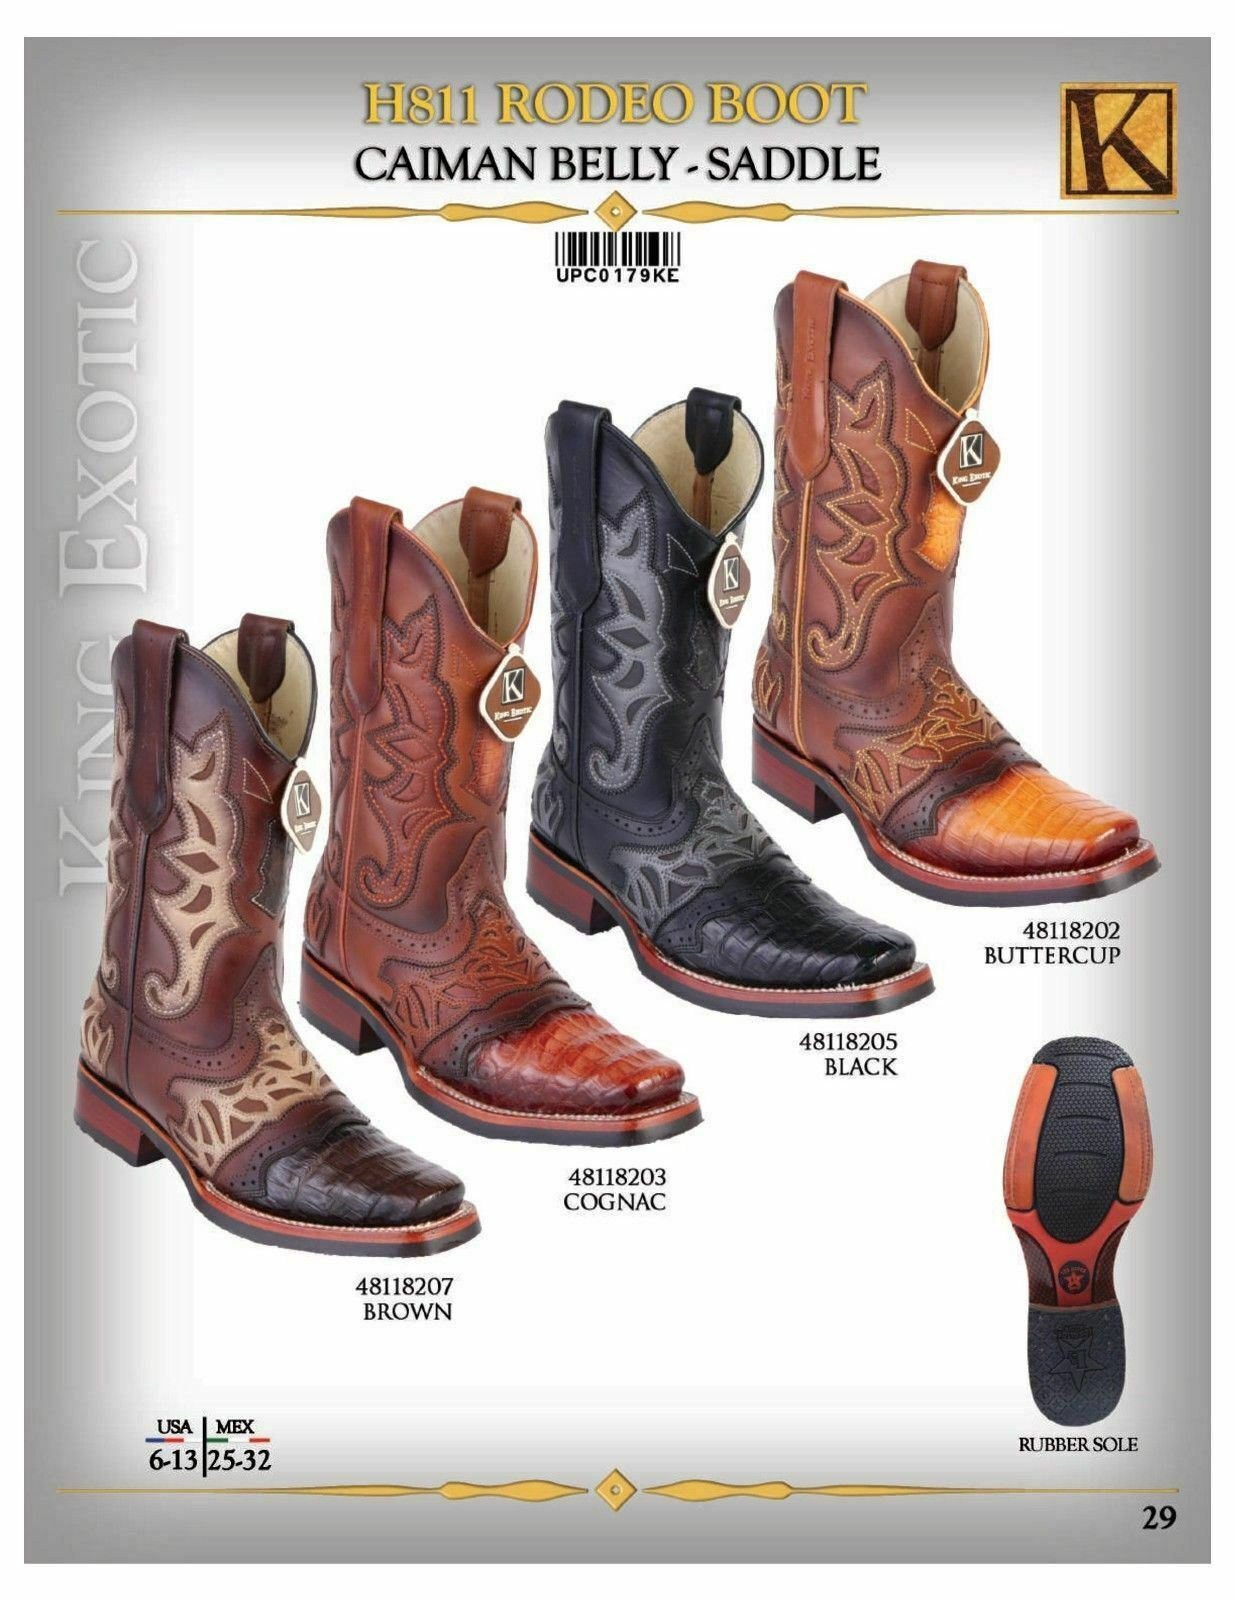 17d217c5e82 Rodeo H811 Men's Exotic King Genuine Leather Boots Cowboy Saddle ...